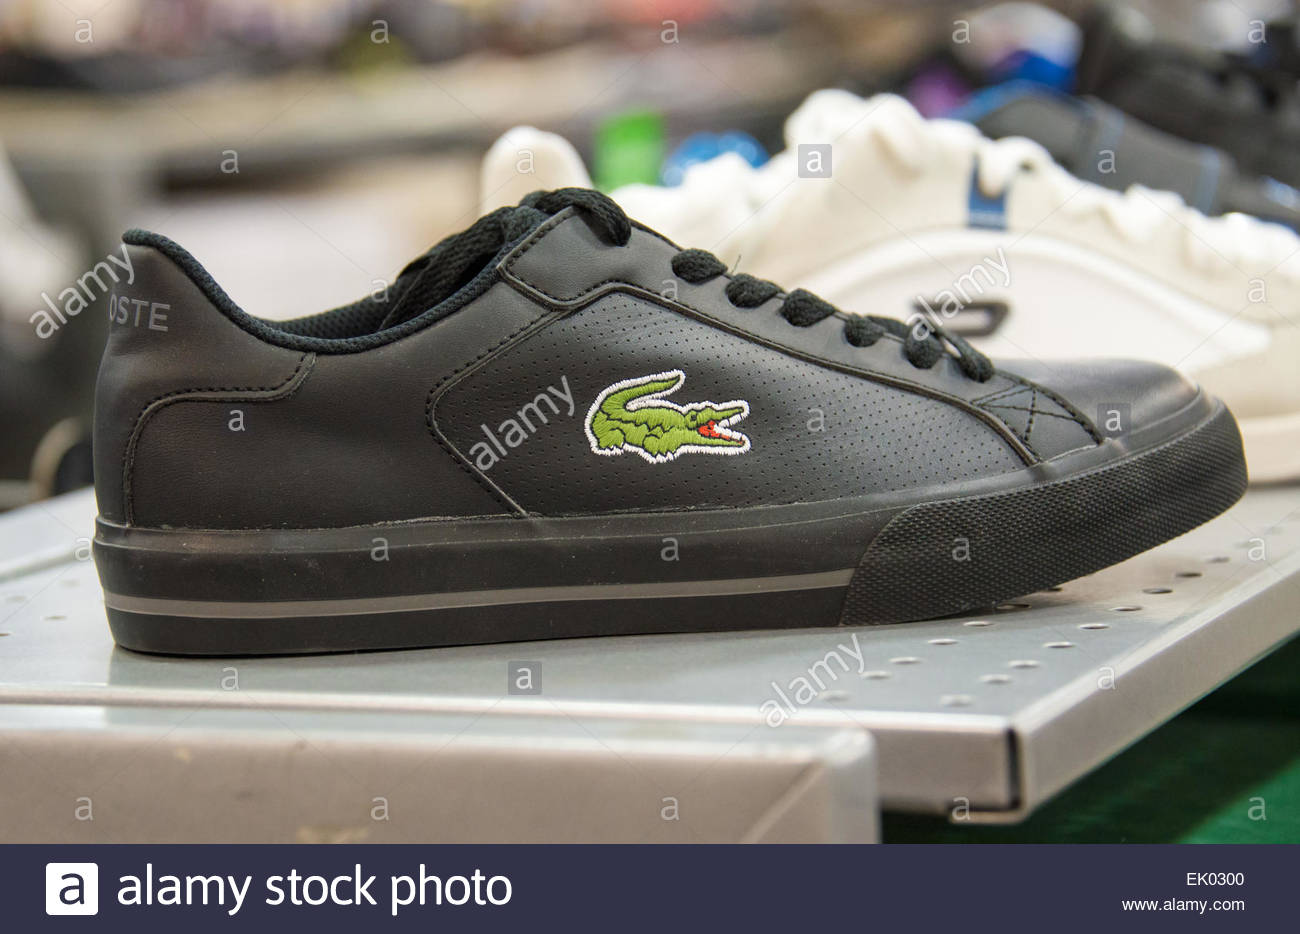 Lacoste Clothing Immagini & Fotos Stock Alamy